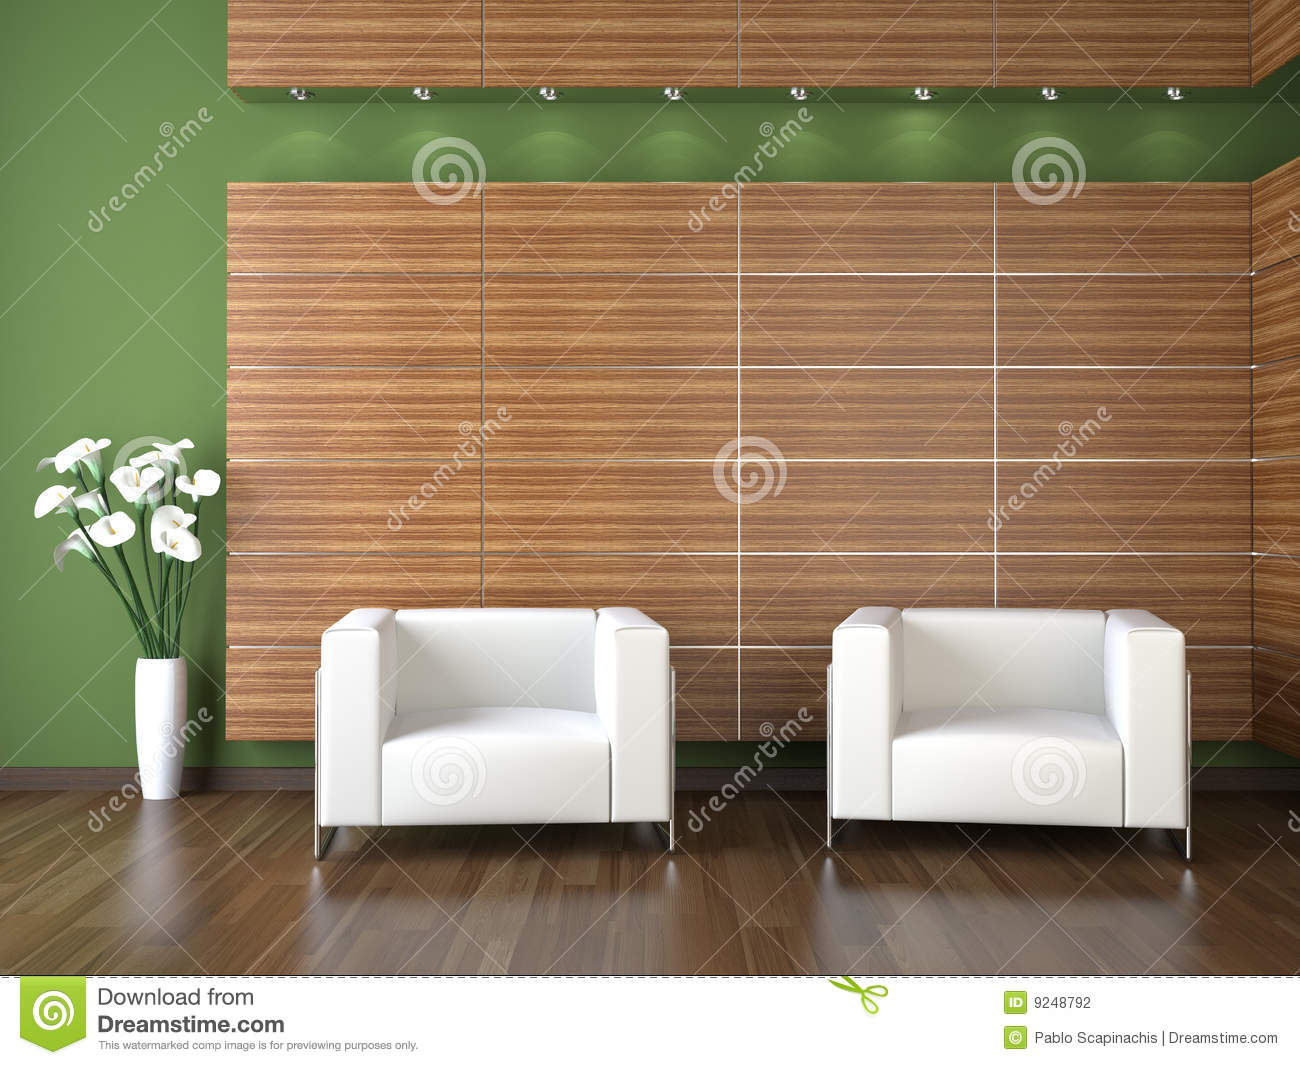 1 Bedroom With Big Living Room also Office Design Ideas Interior Wall Cladding moreover Office Design Ideas Interior Wall Cladding also Modern Home Interior Design Ideas Texture furthermore 1 Bedroom With Big Living Room. on 1511 modern boundary wall detail and gate design